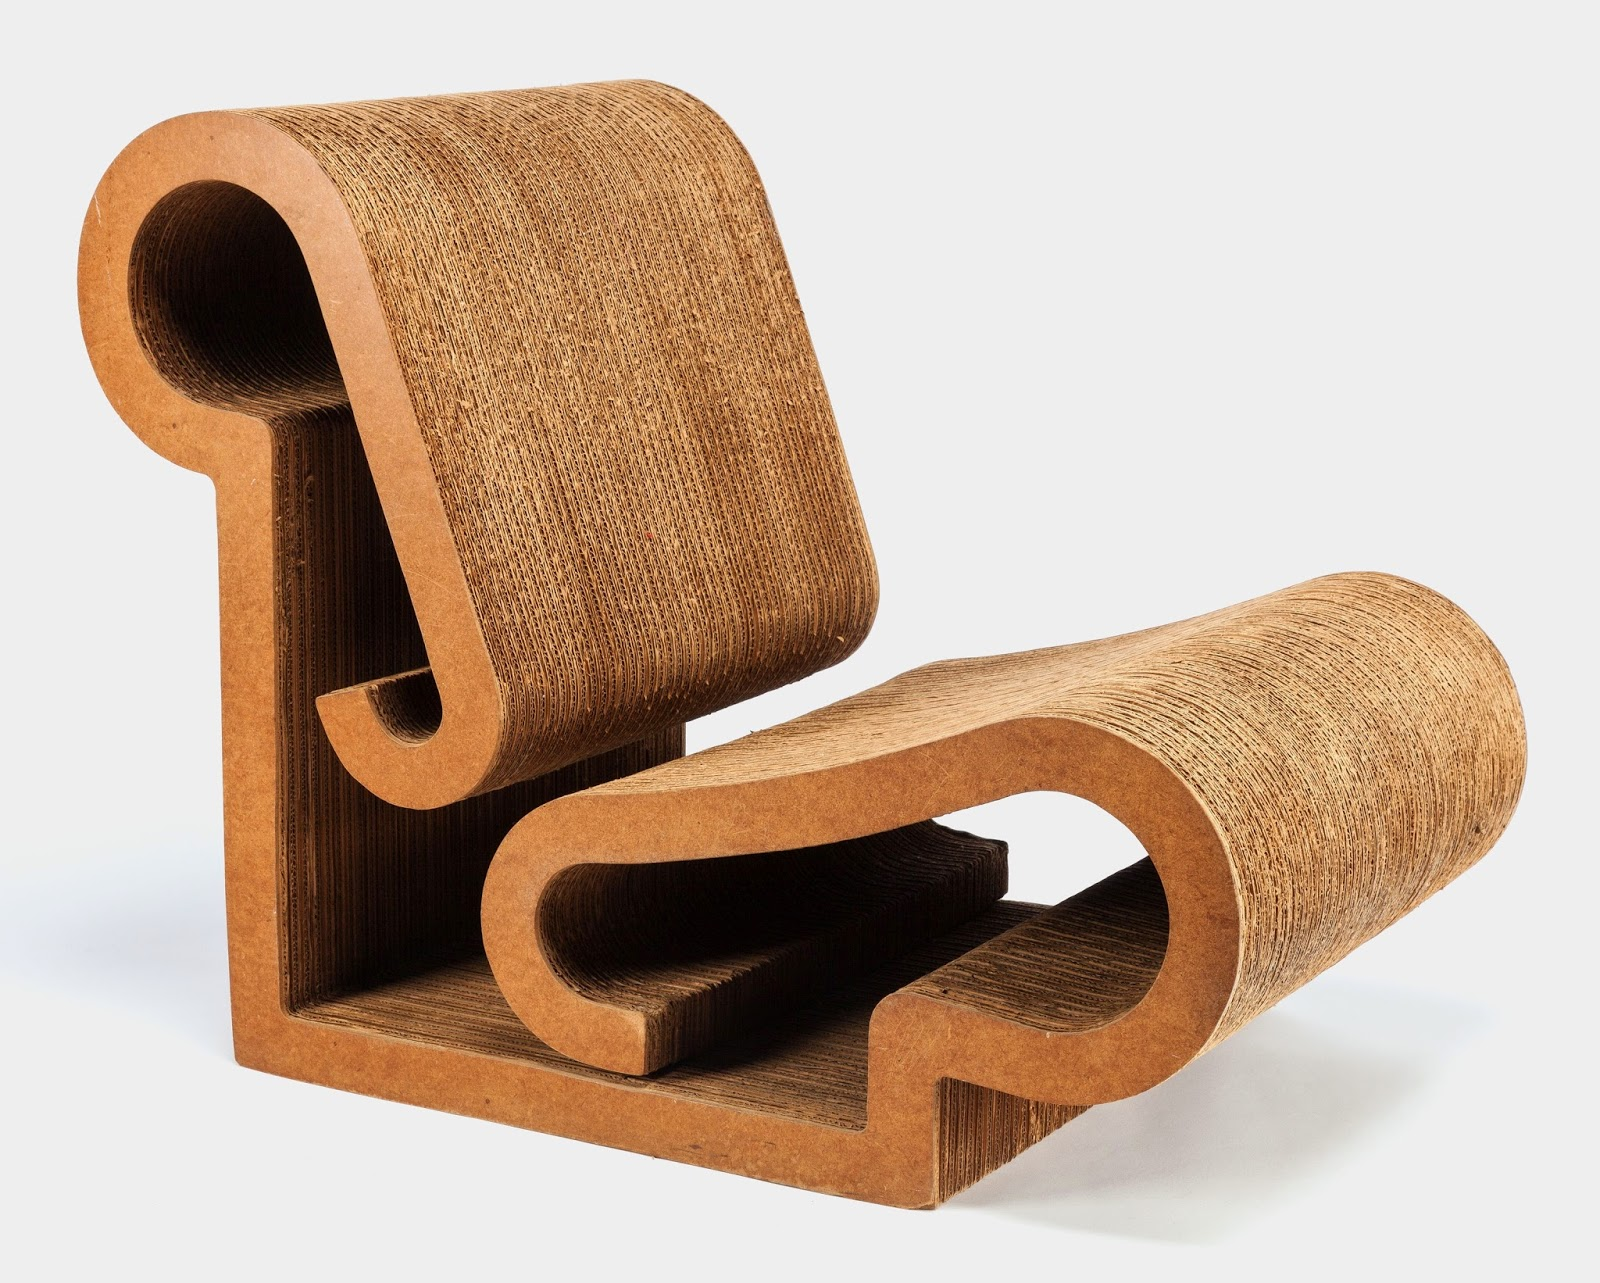 70s chairs is frank o gehry s cardboard chair wiggle side chair - Frank Gehry 1972 Contour Lounge Chair 2 000